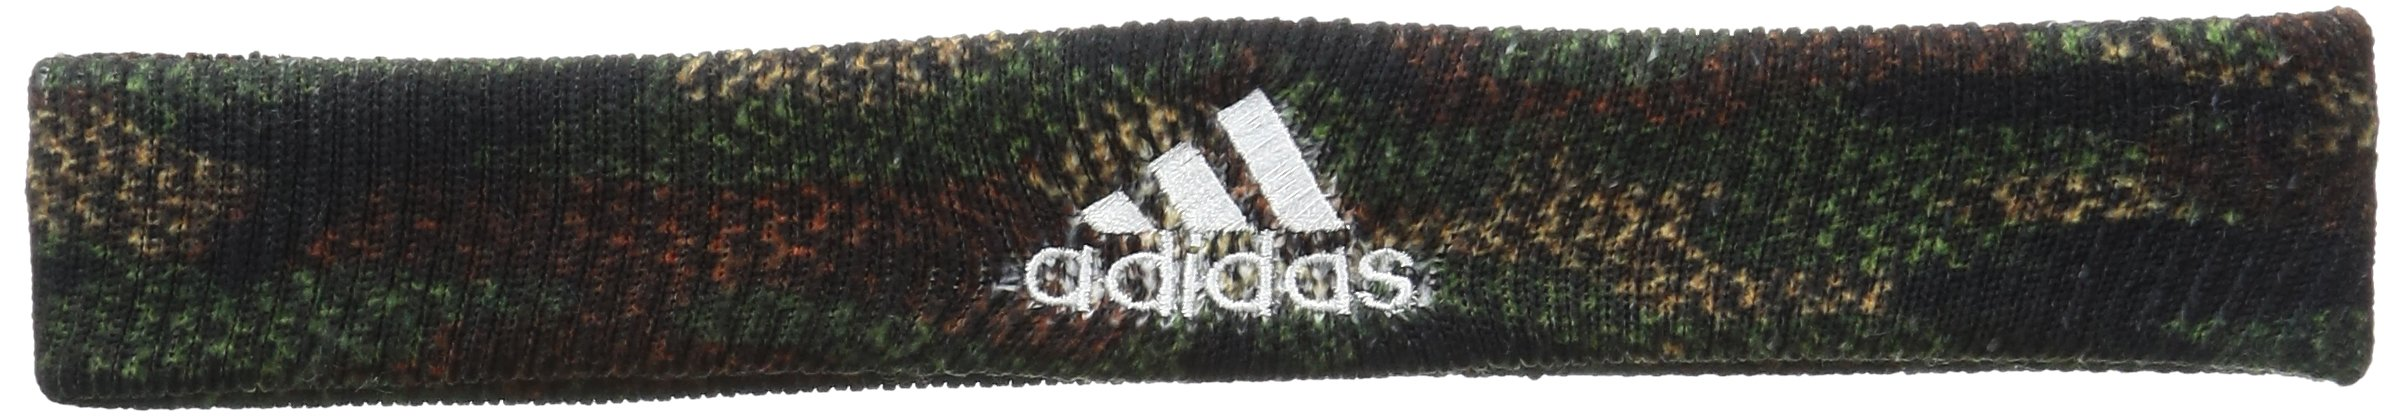 adidas Interval Reversible Headband, Prime Camo Digital Print, One Size